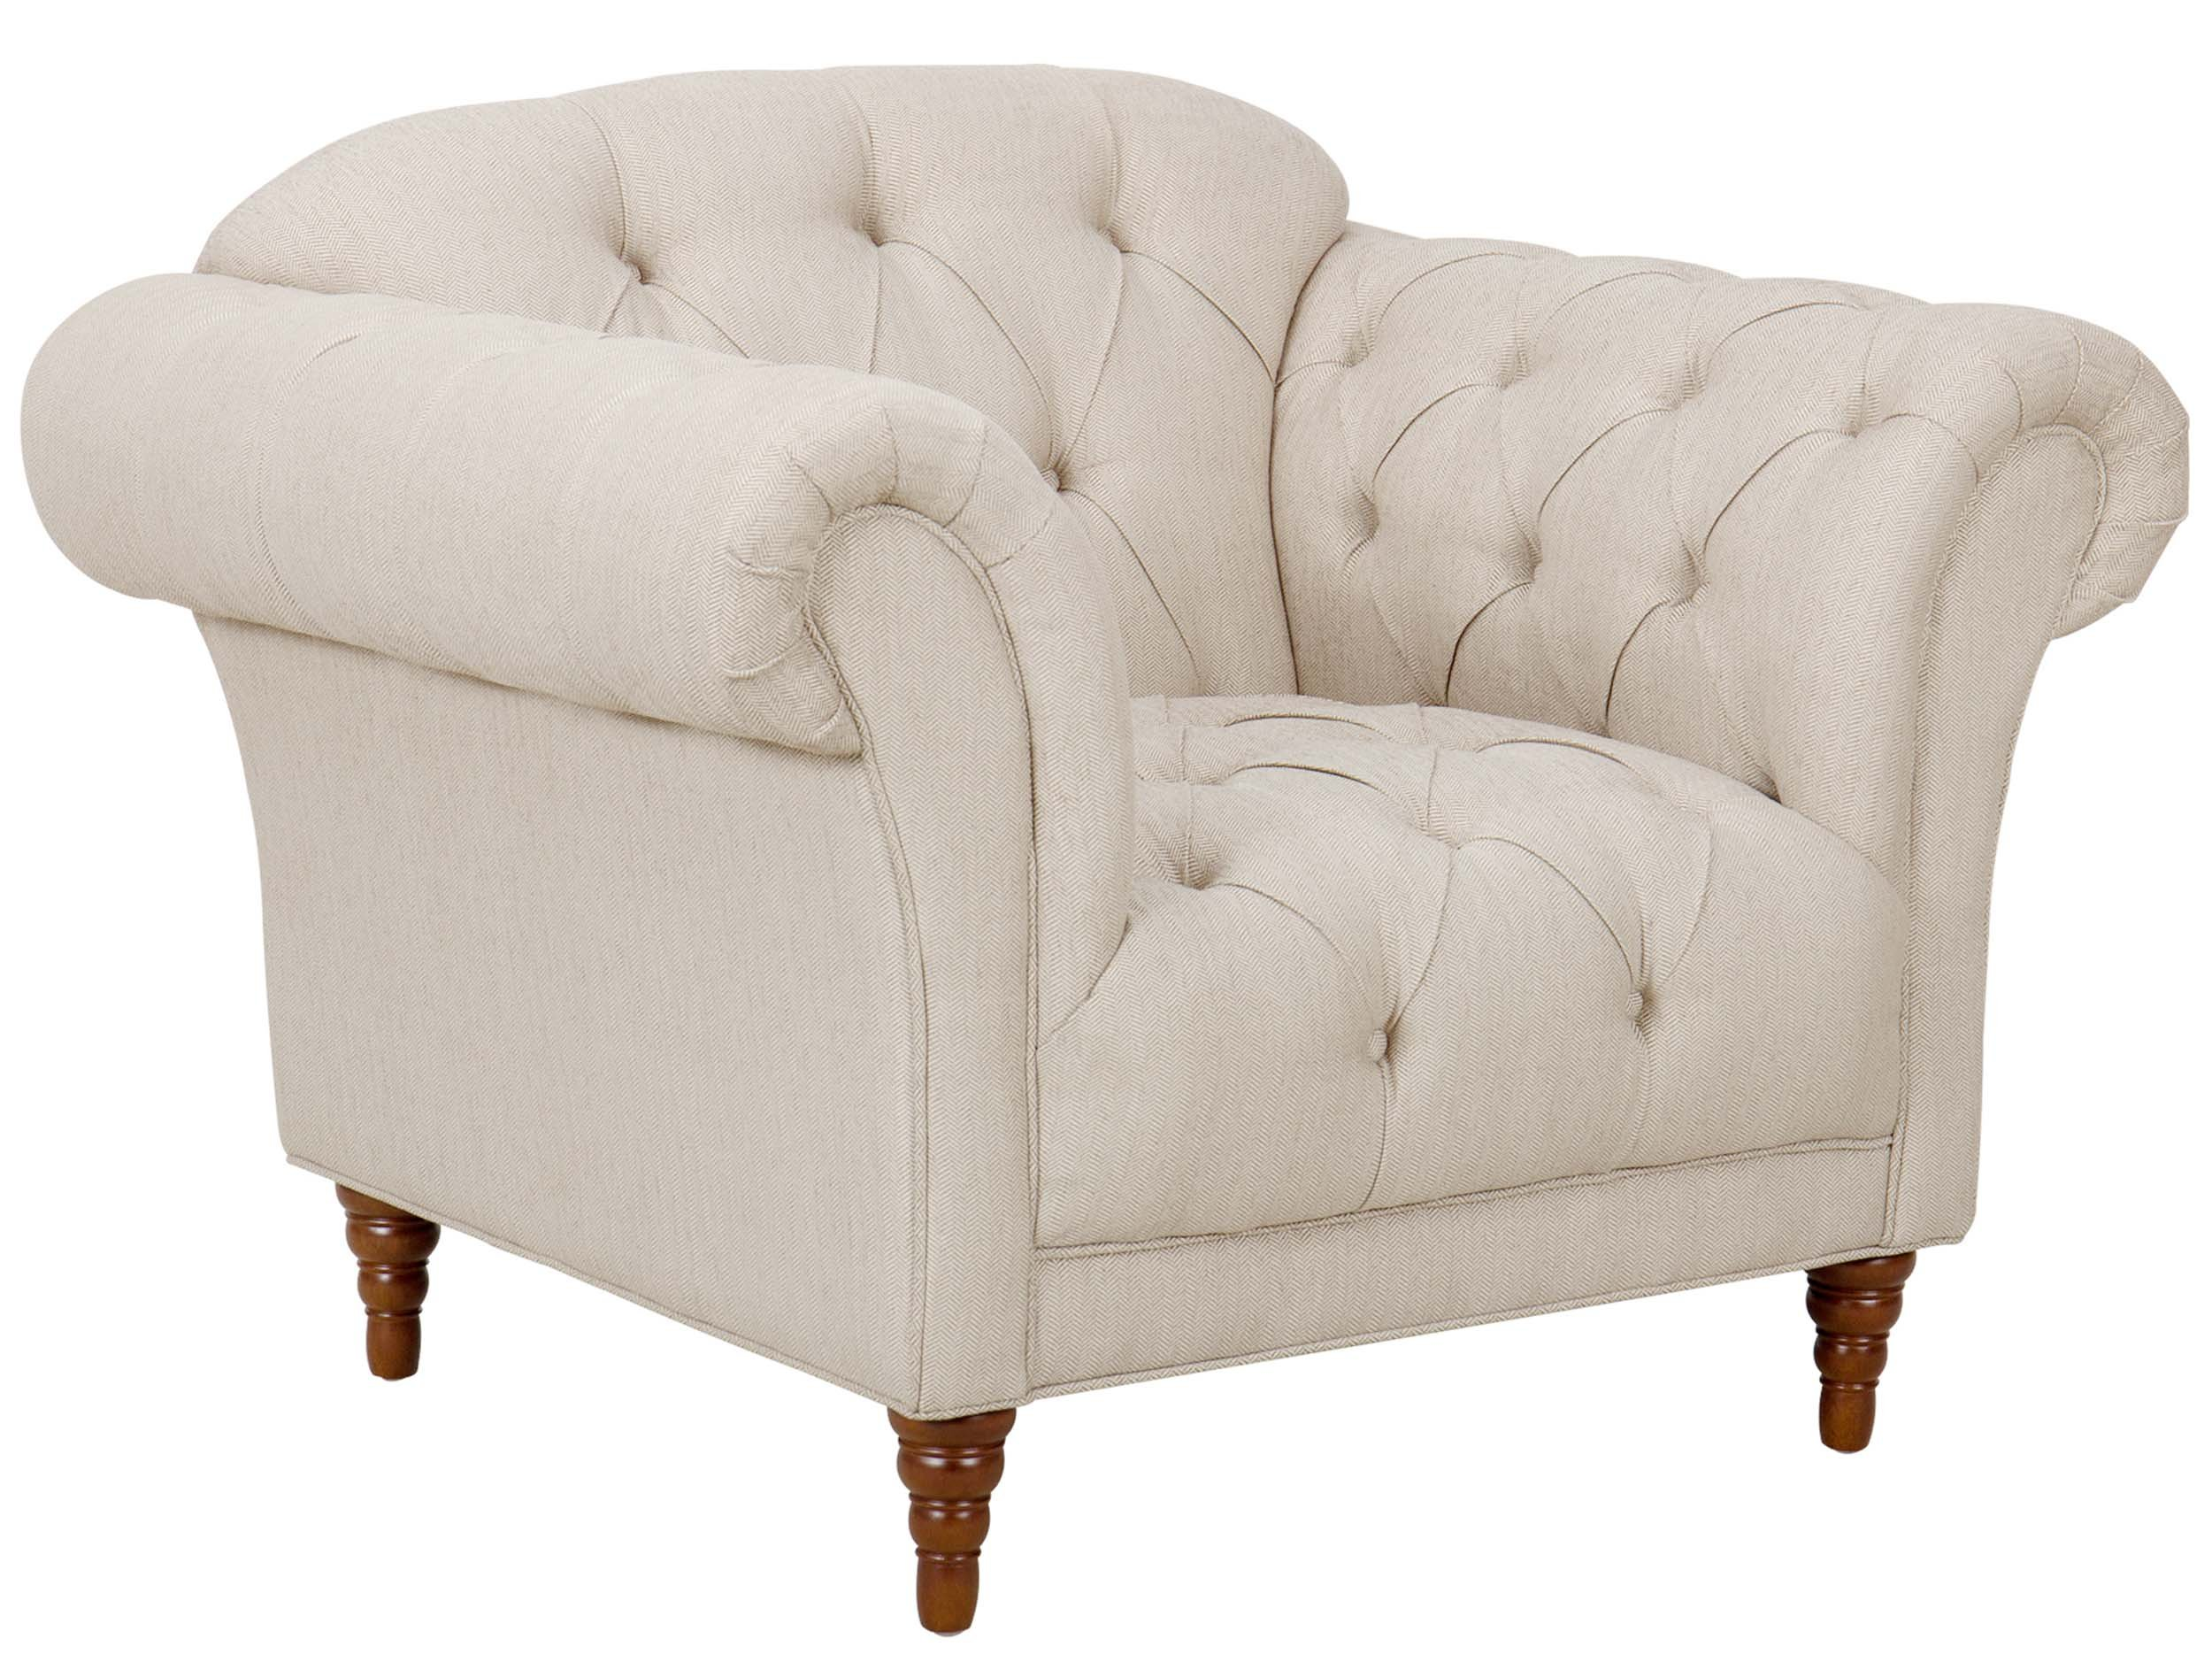 Homelegance St. Claire Style Armchair with Tufting and Rolled Arm Design, Brown/Almond